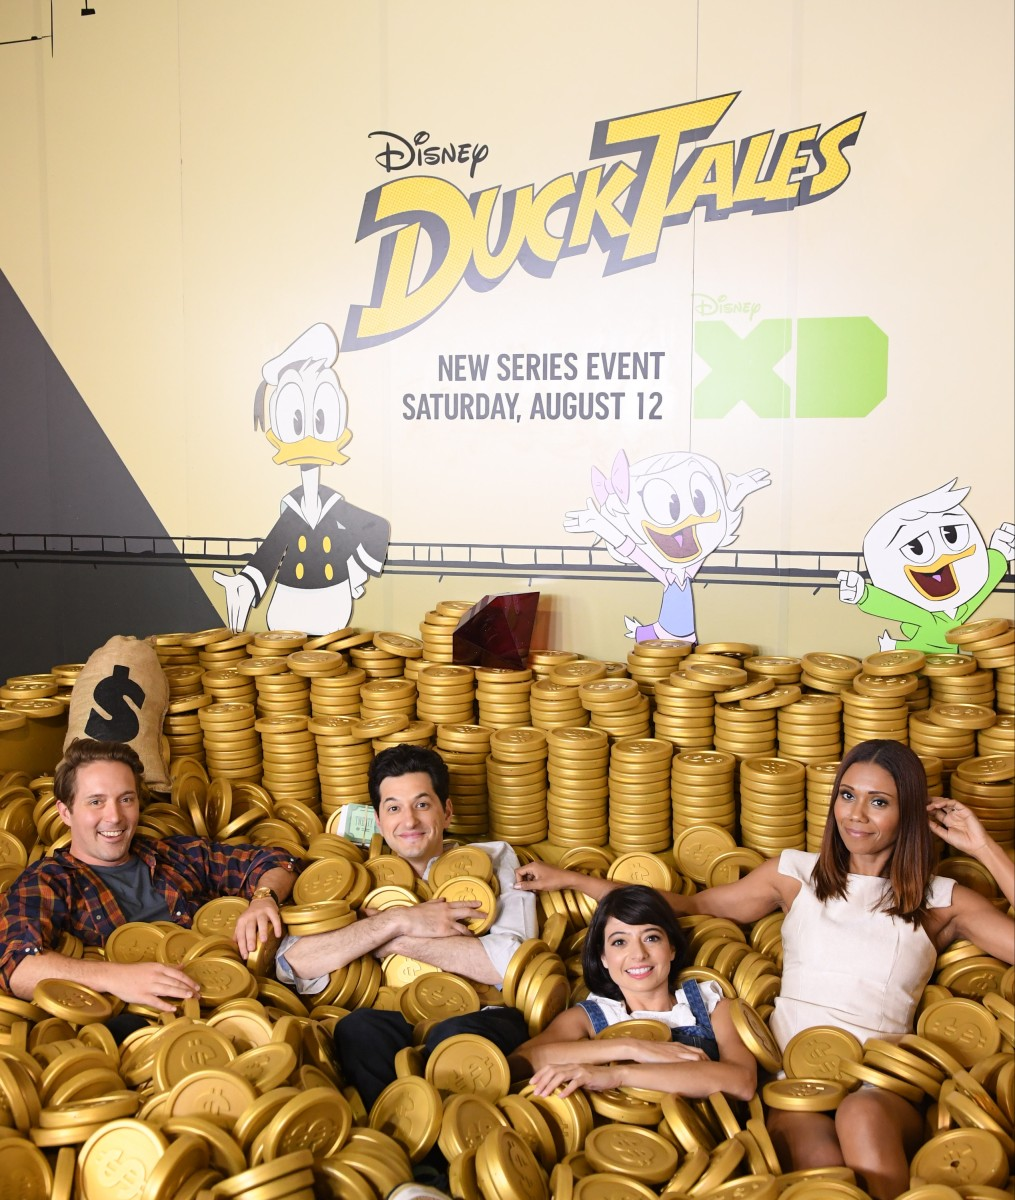 147119 kn5 6243 Life is like a hurricane in DuckTales, Disney XDs 2017 reboot